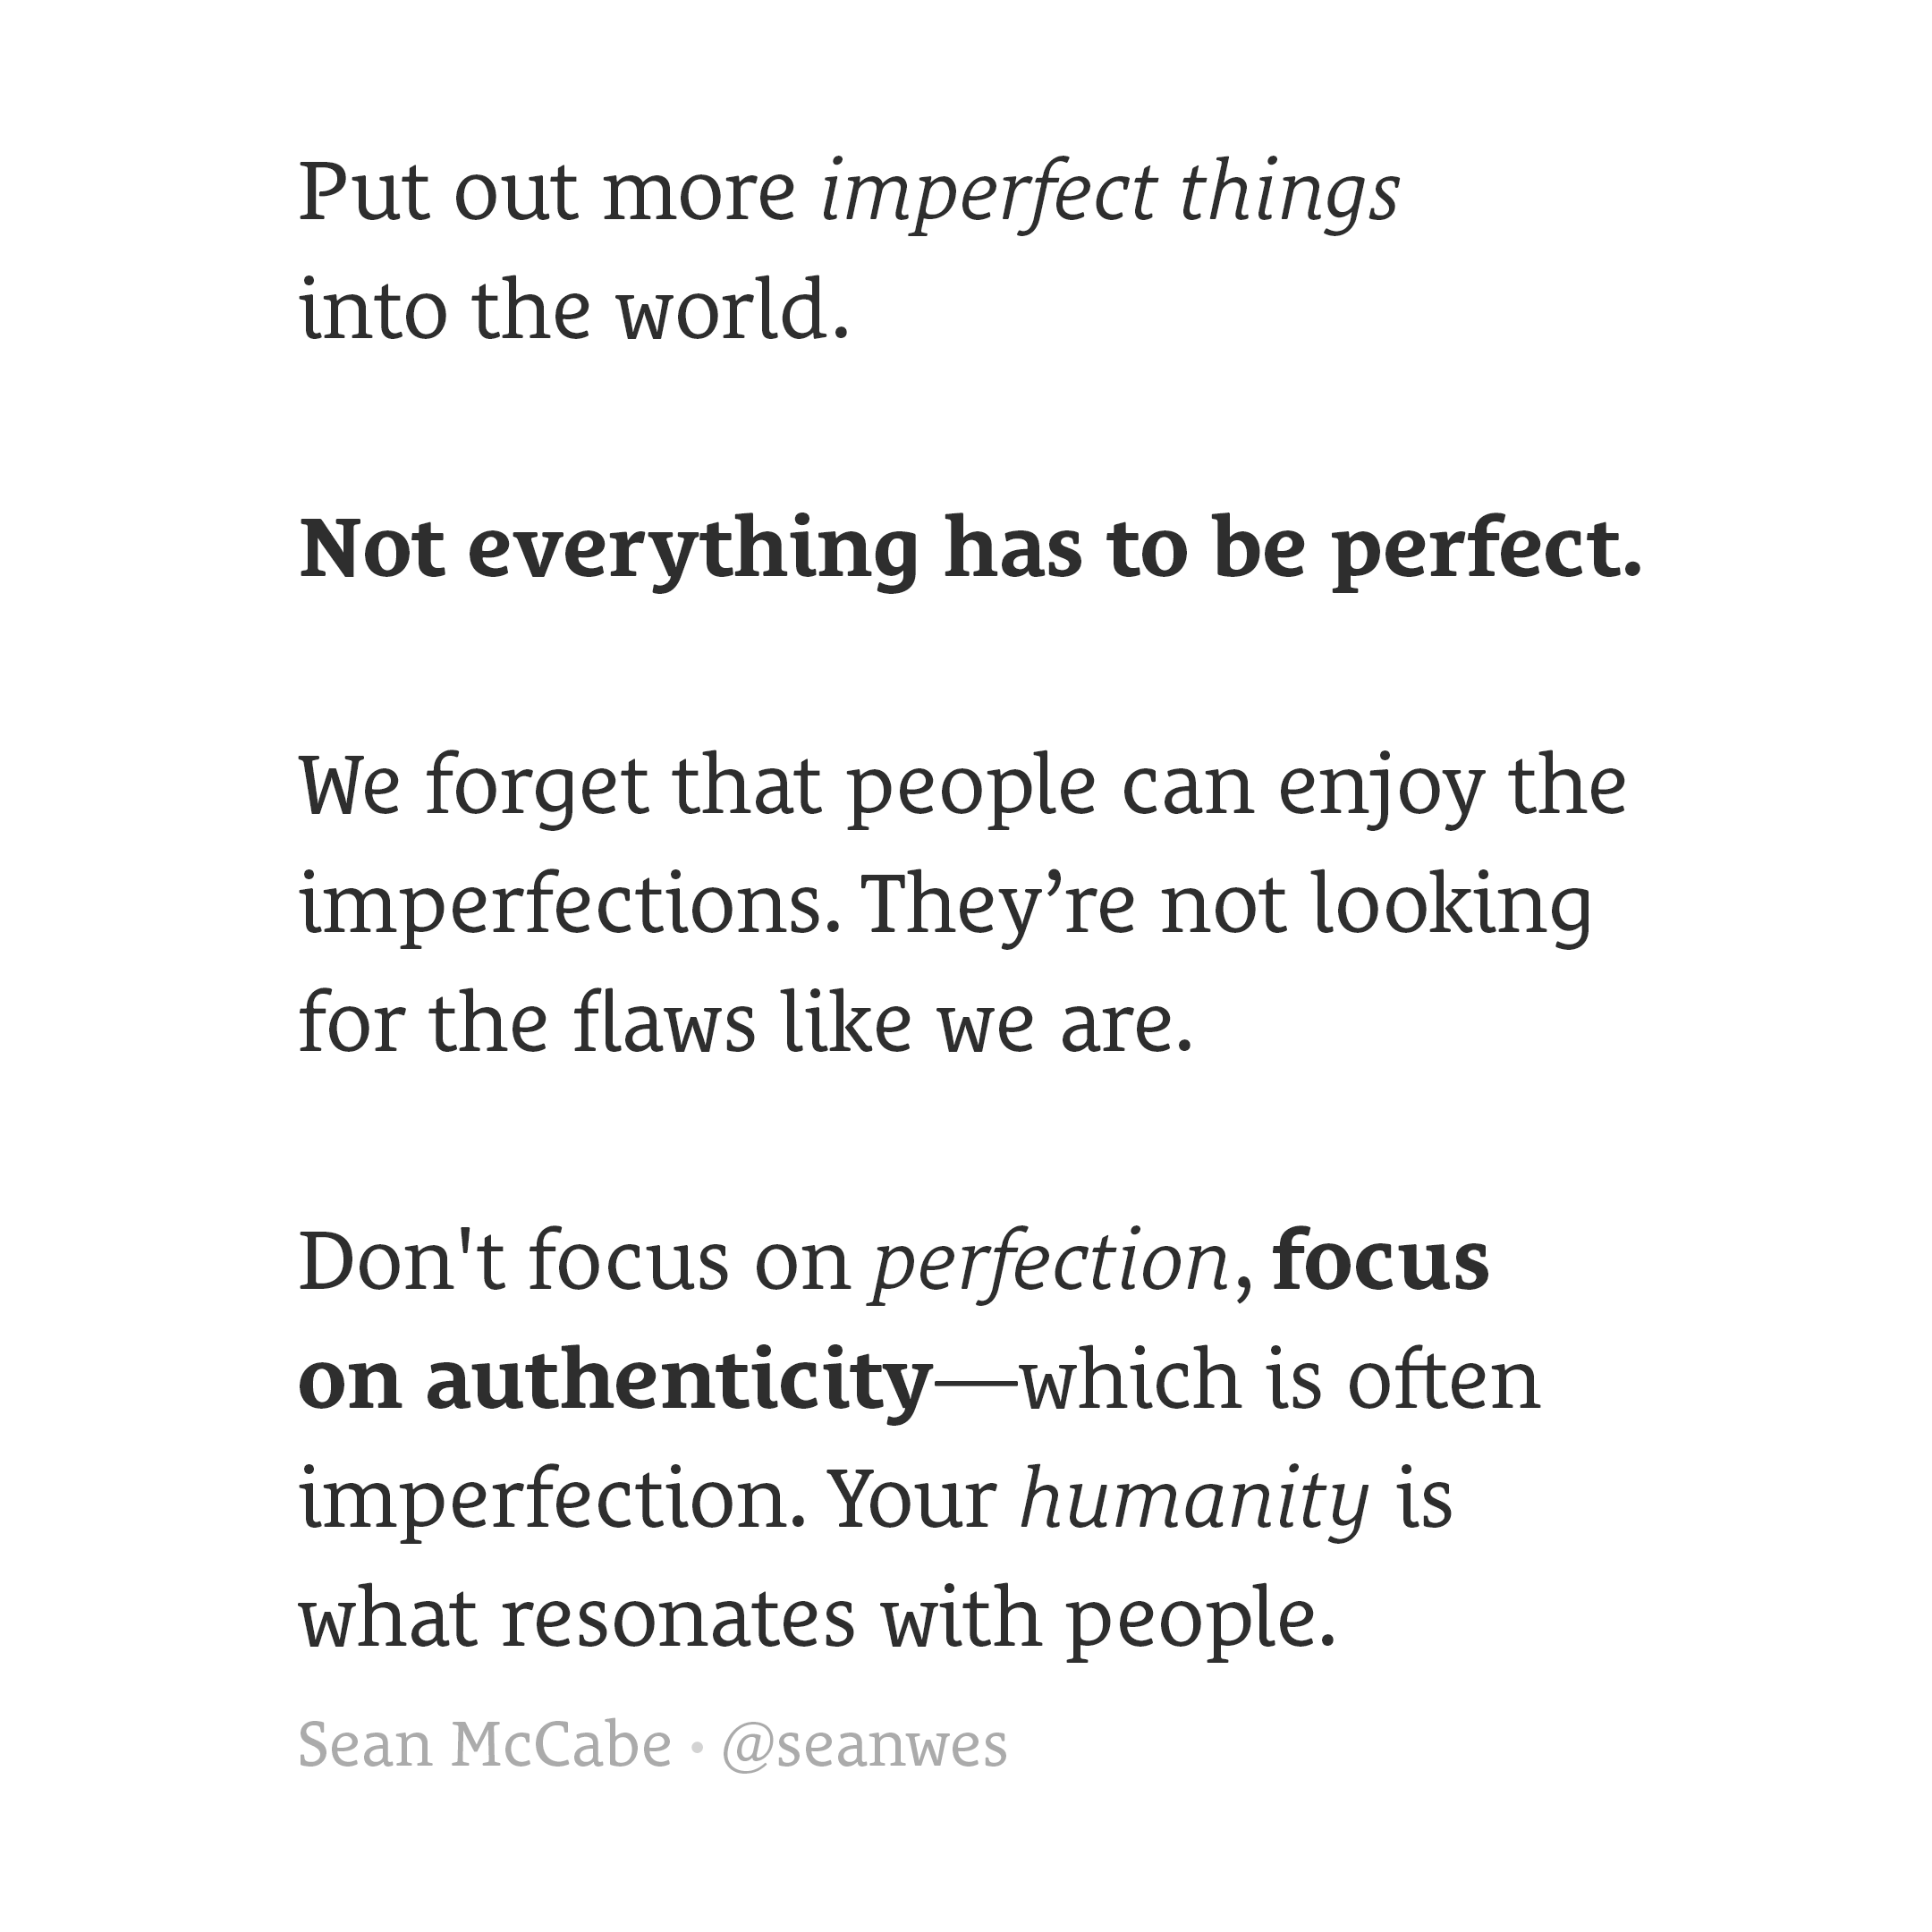 Not everything has to be perfect.